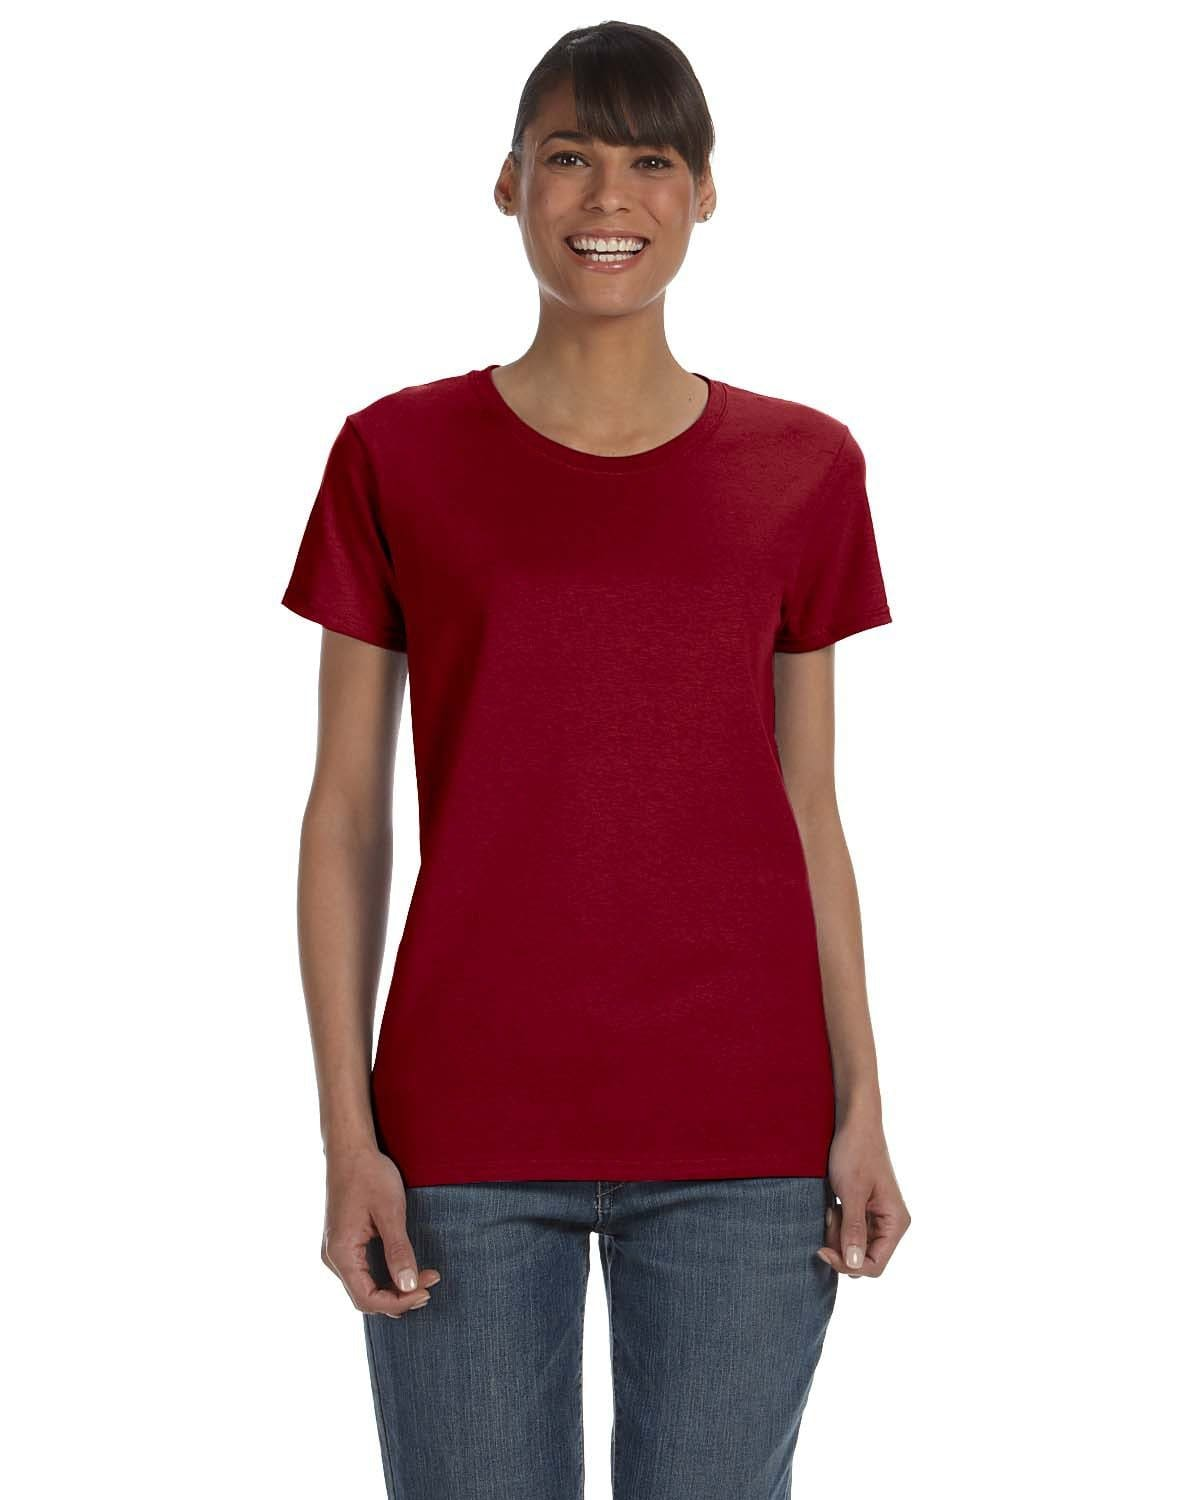 g500l-ladies-heavy-cotton-5-3-oz-t-shirt-large-xl-Large-ANT CHERRY RED-Oasispromos